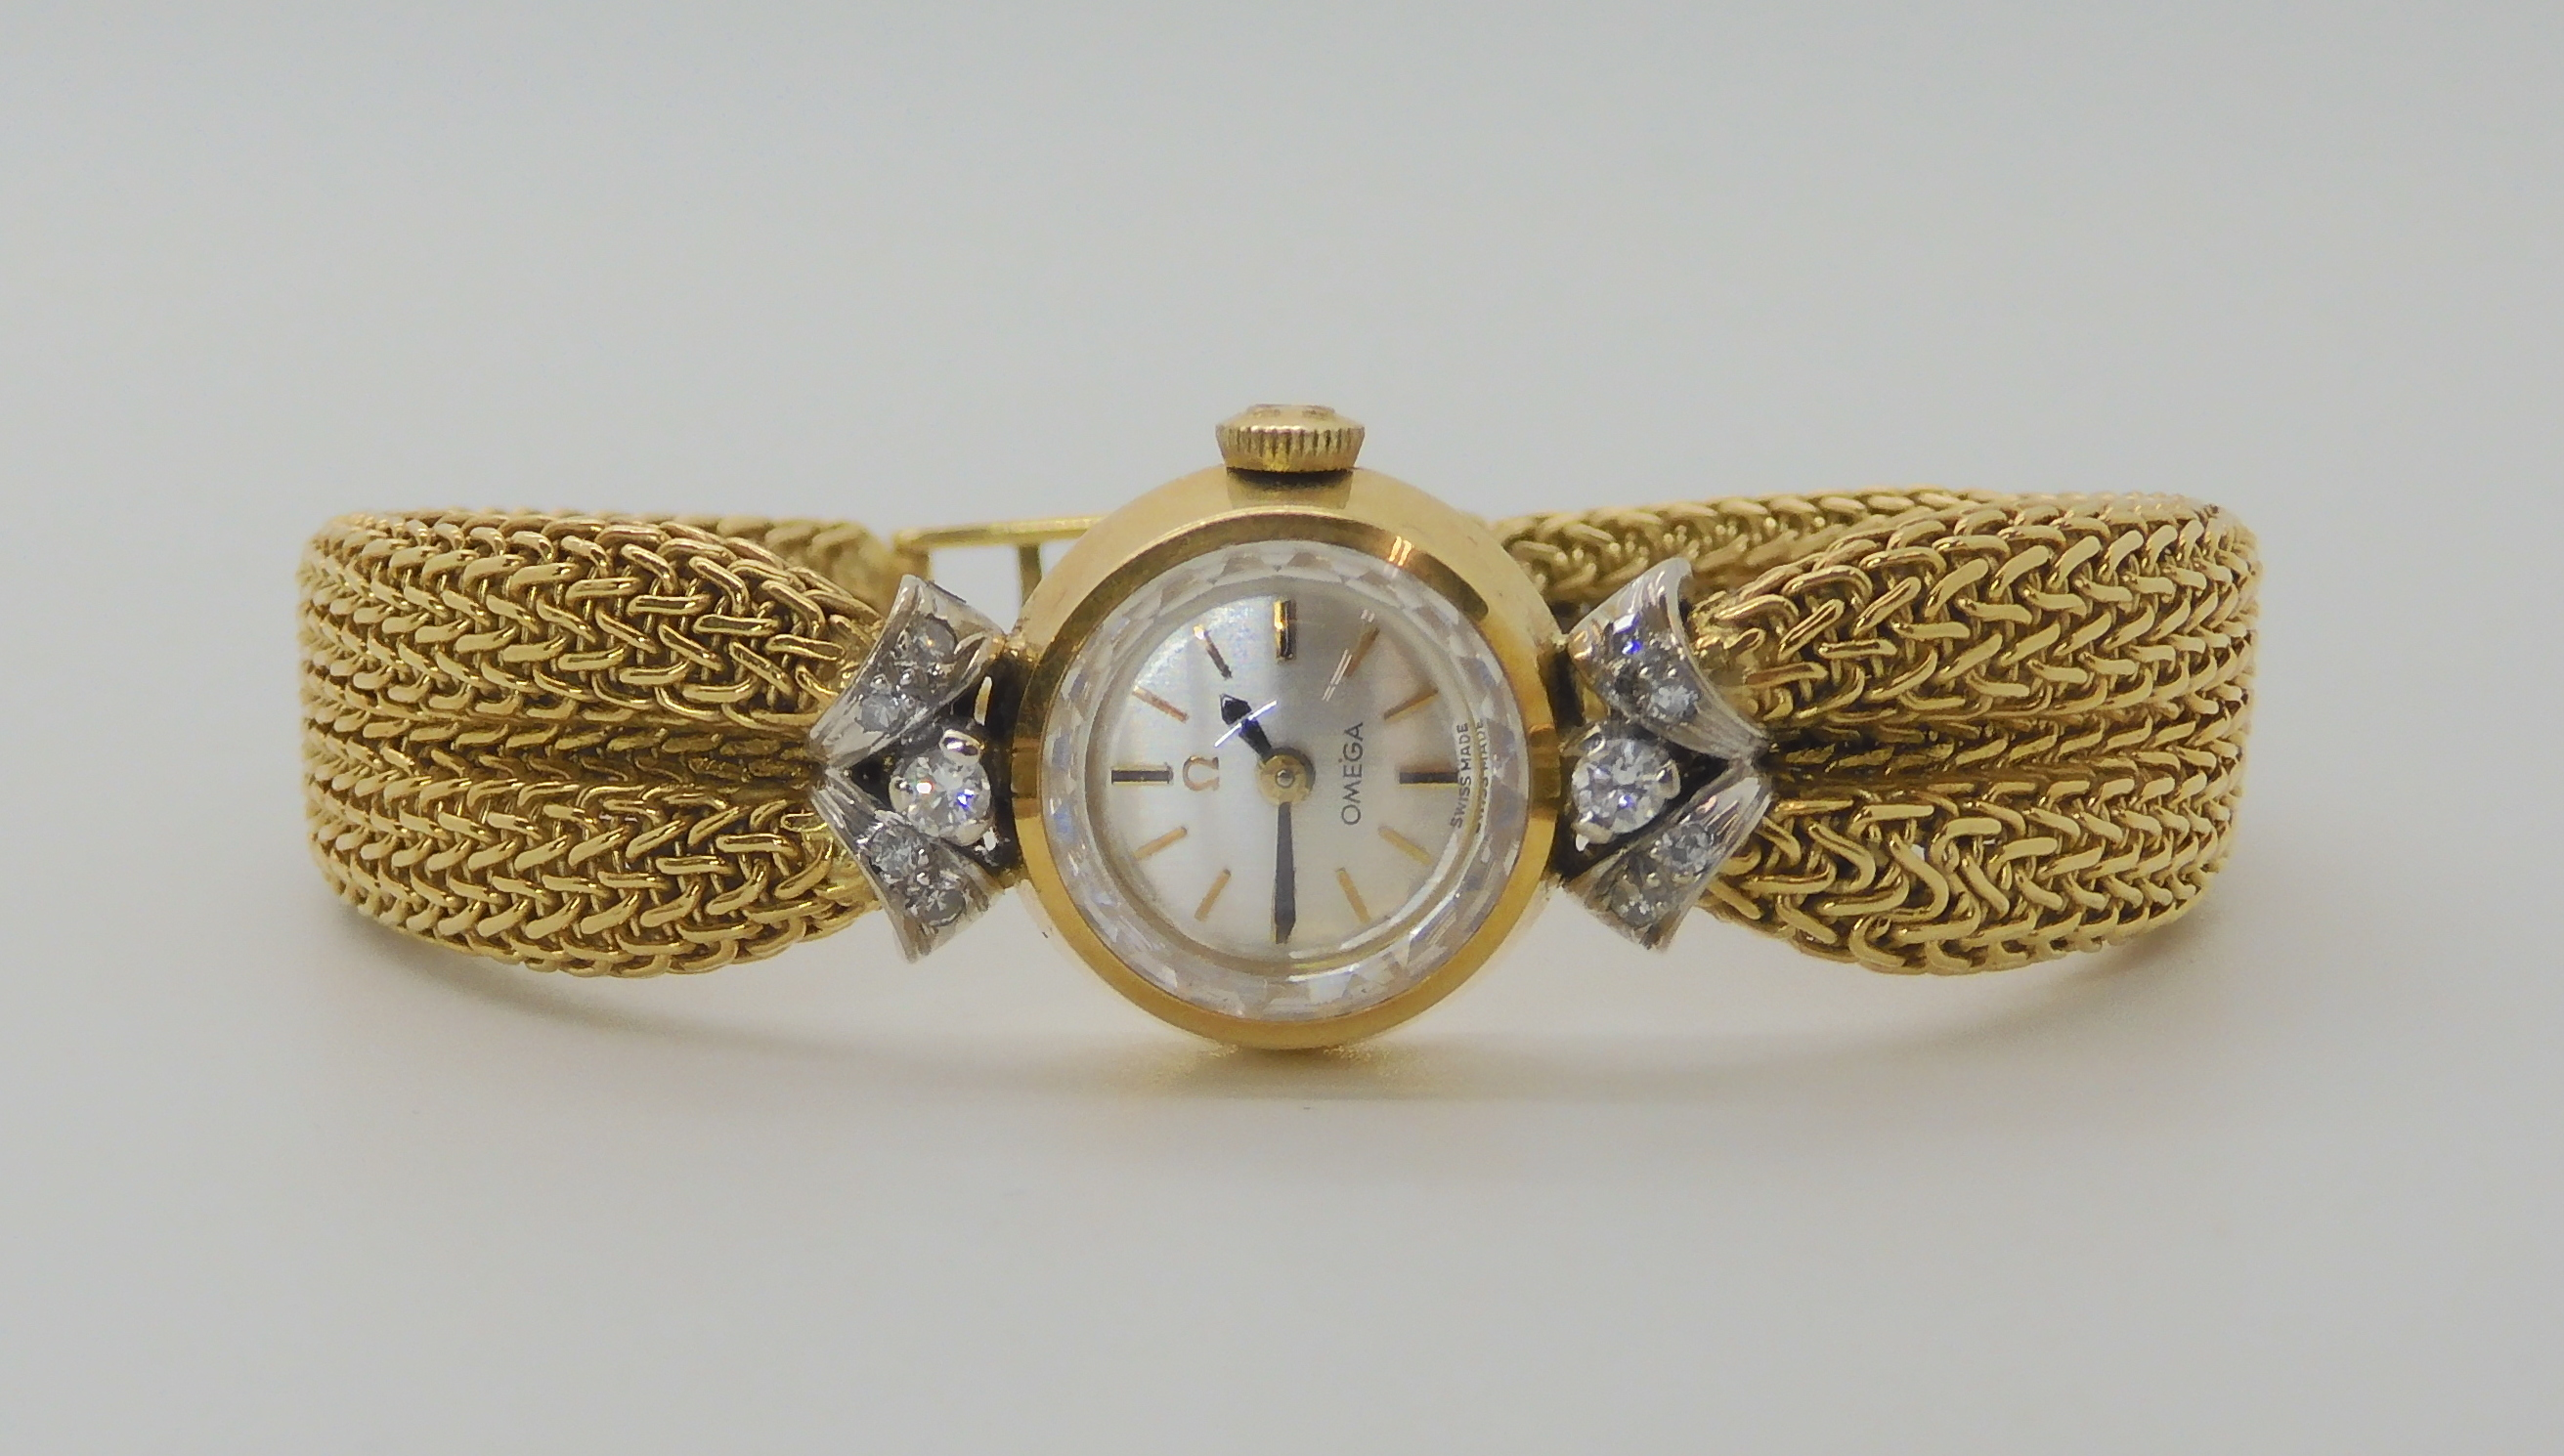 A LADIES 18CT GOLD OMEGA WITH DIAMONDS AND DECORATIVE STRAP the woven mesh strap in puckered to look